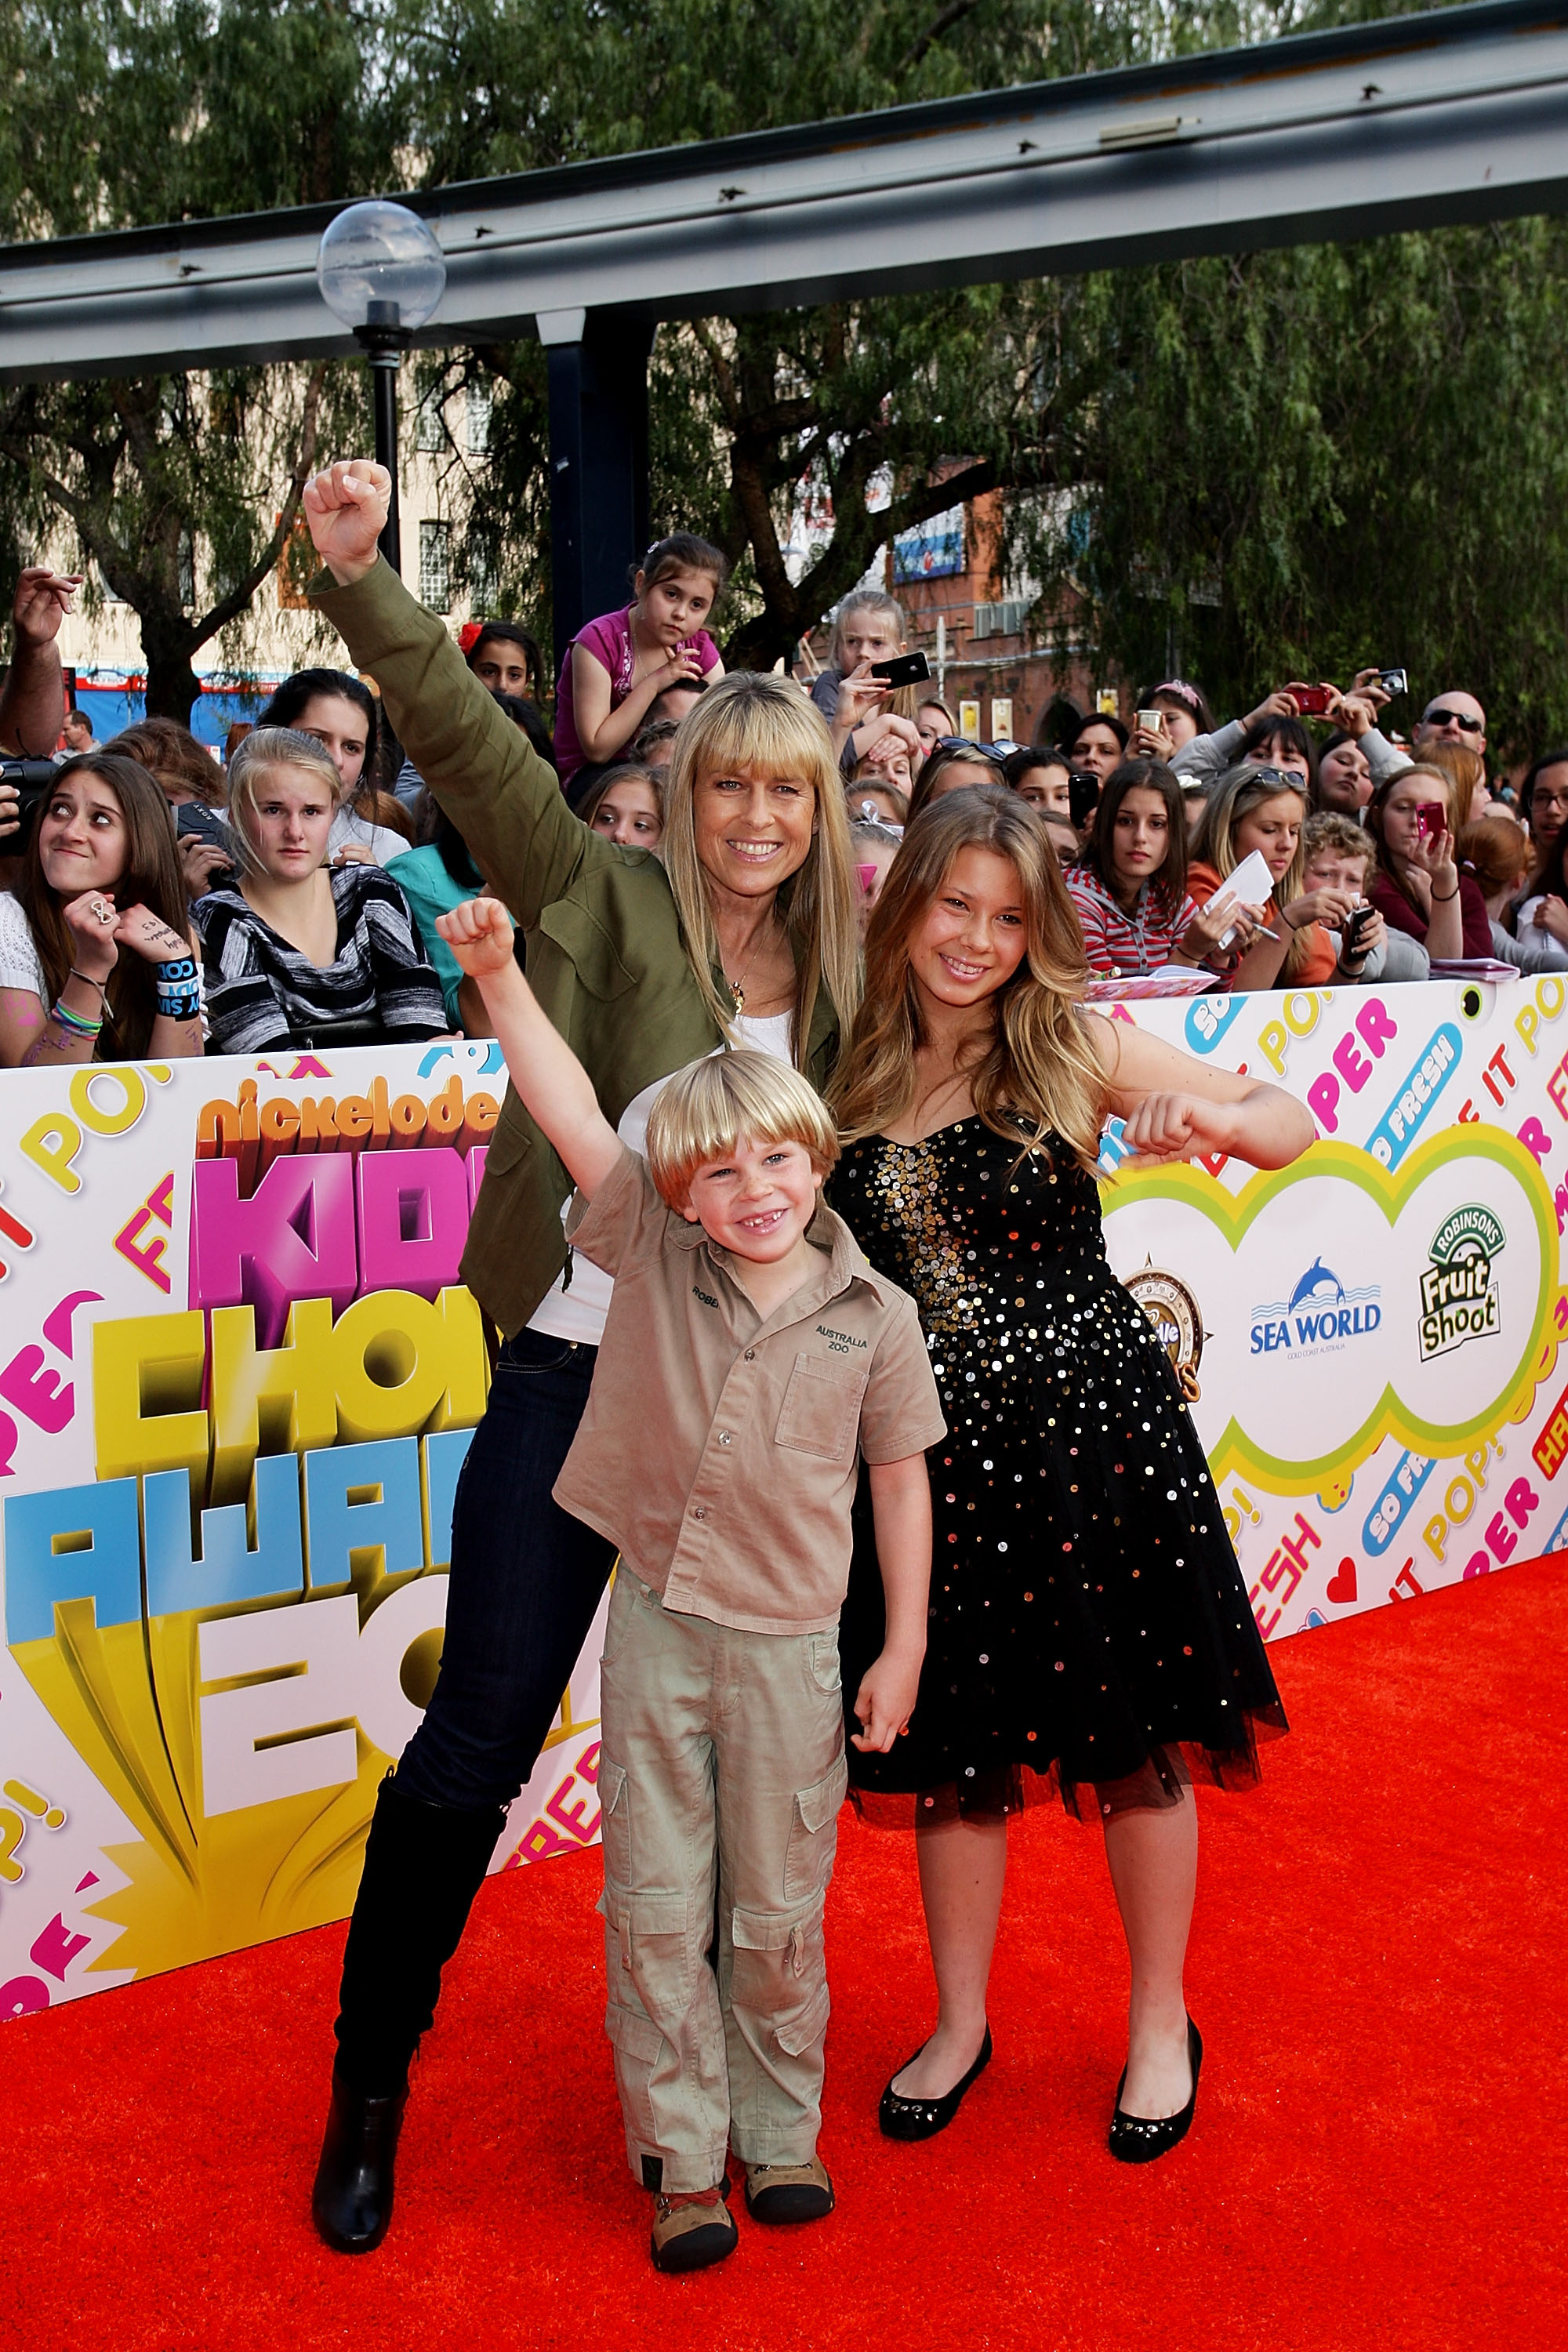 Terri, Robert and Bindi Irwin